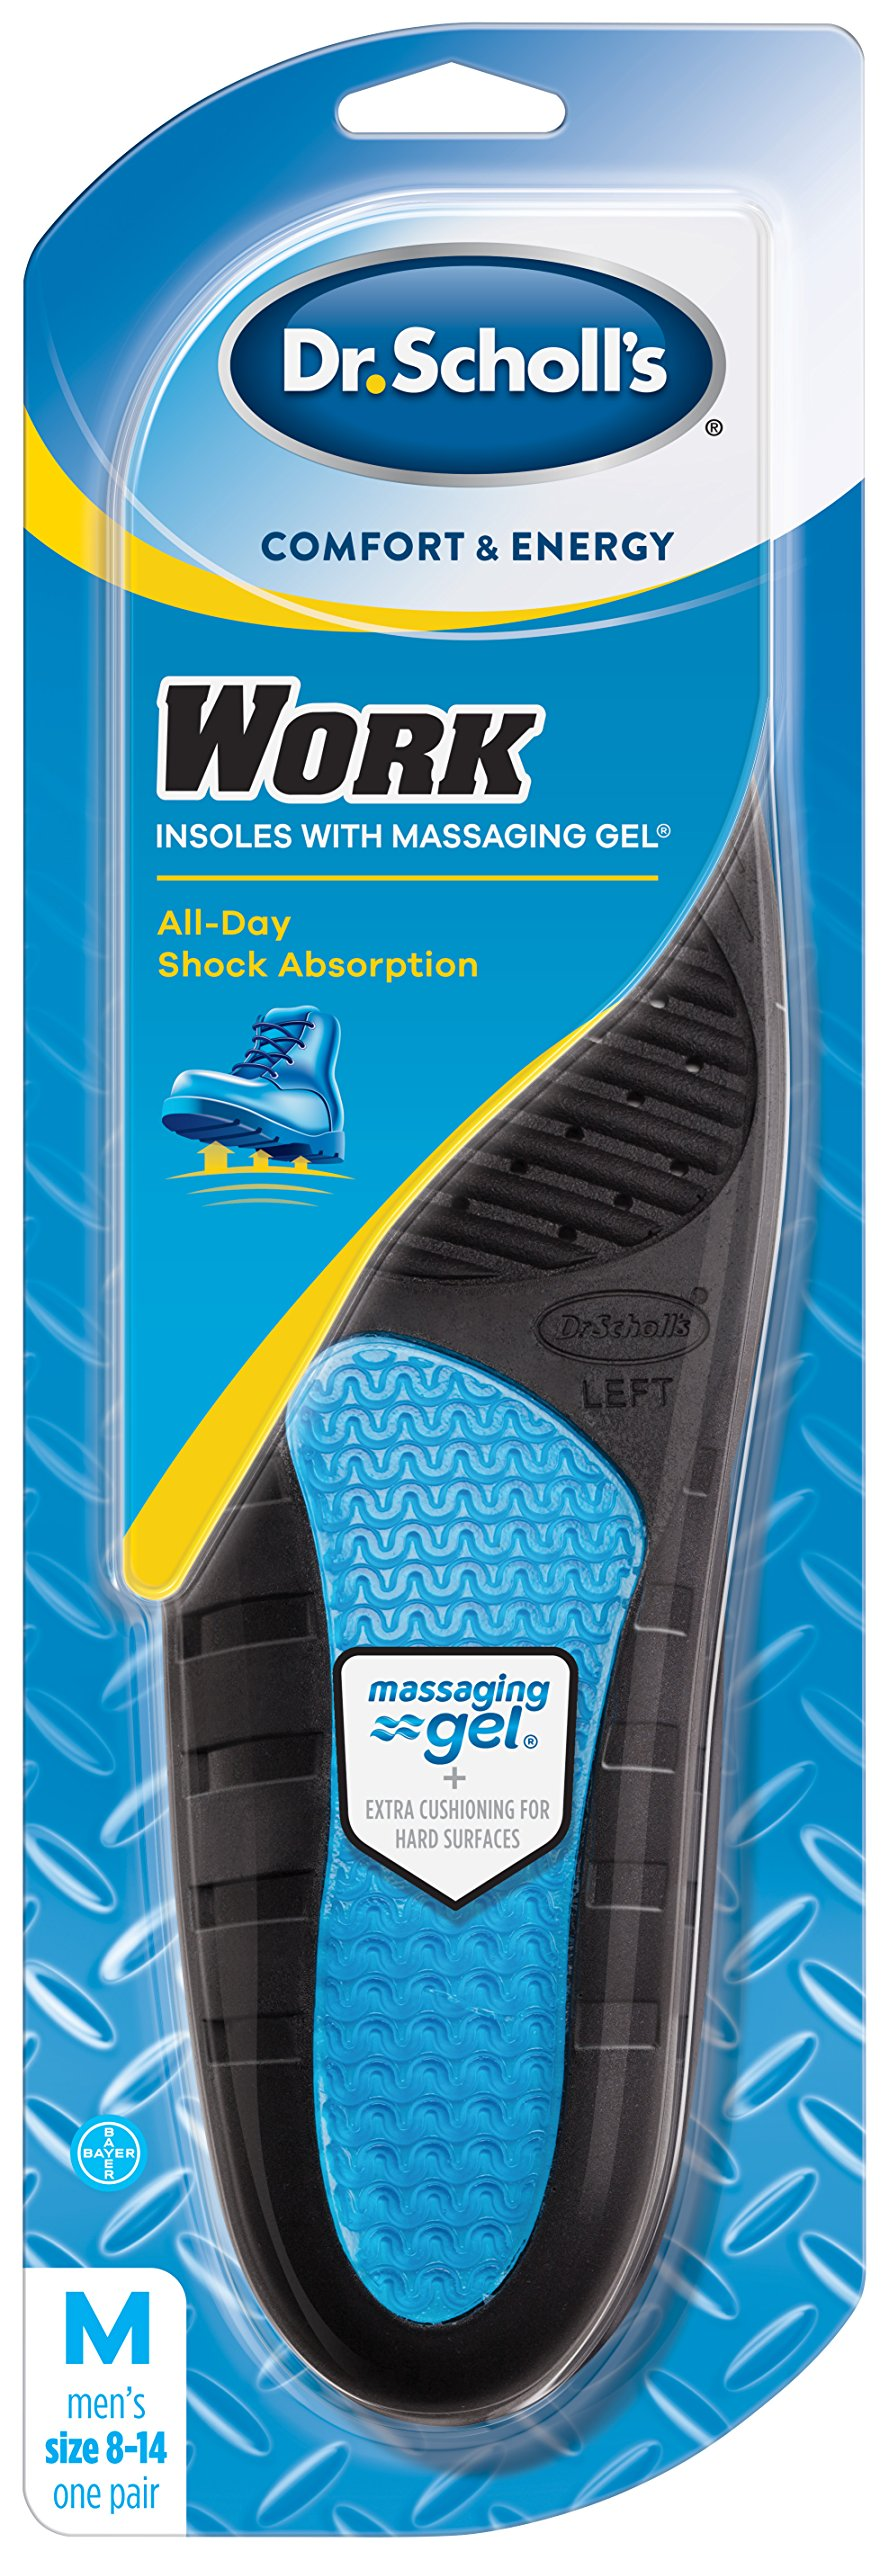 Dr. Scholl's Comfort and Energy Work Insoles for Men, 1 Pair, Size 8-14